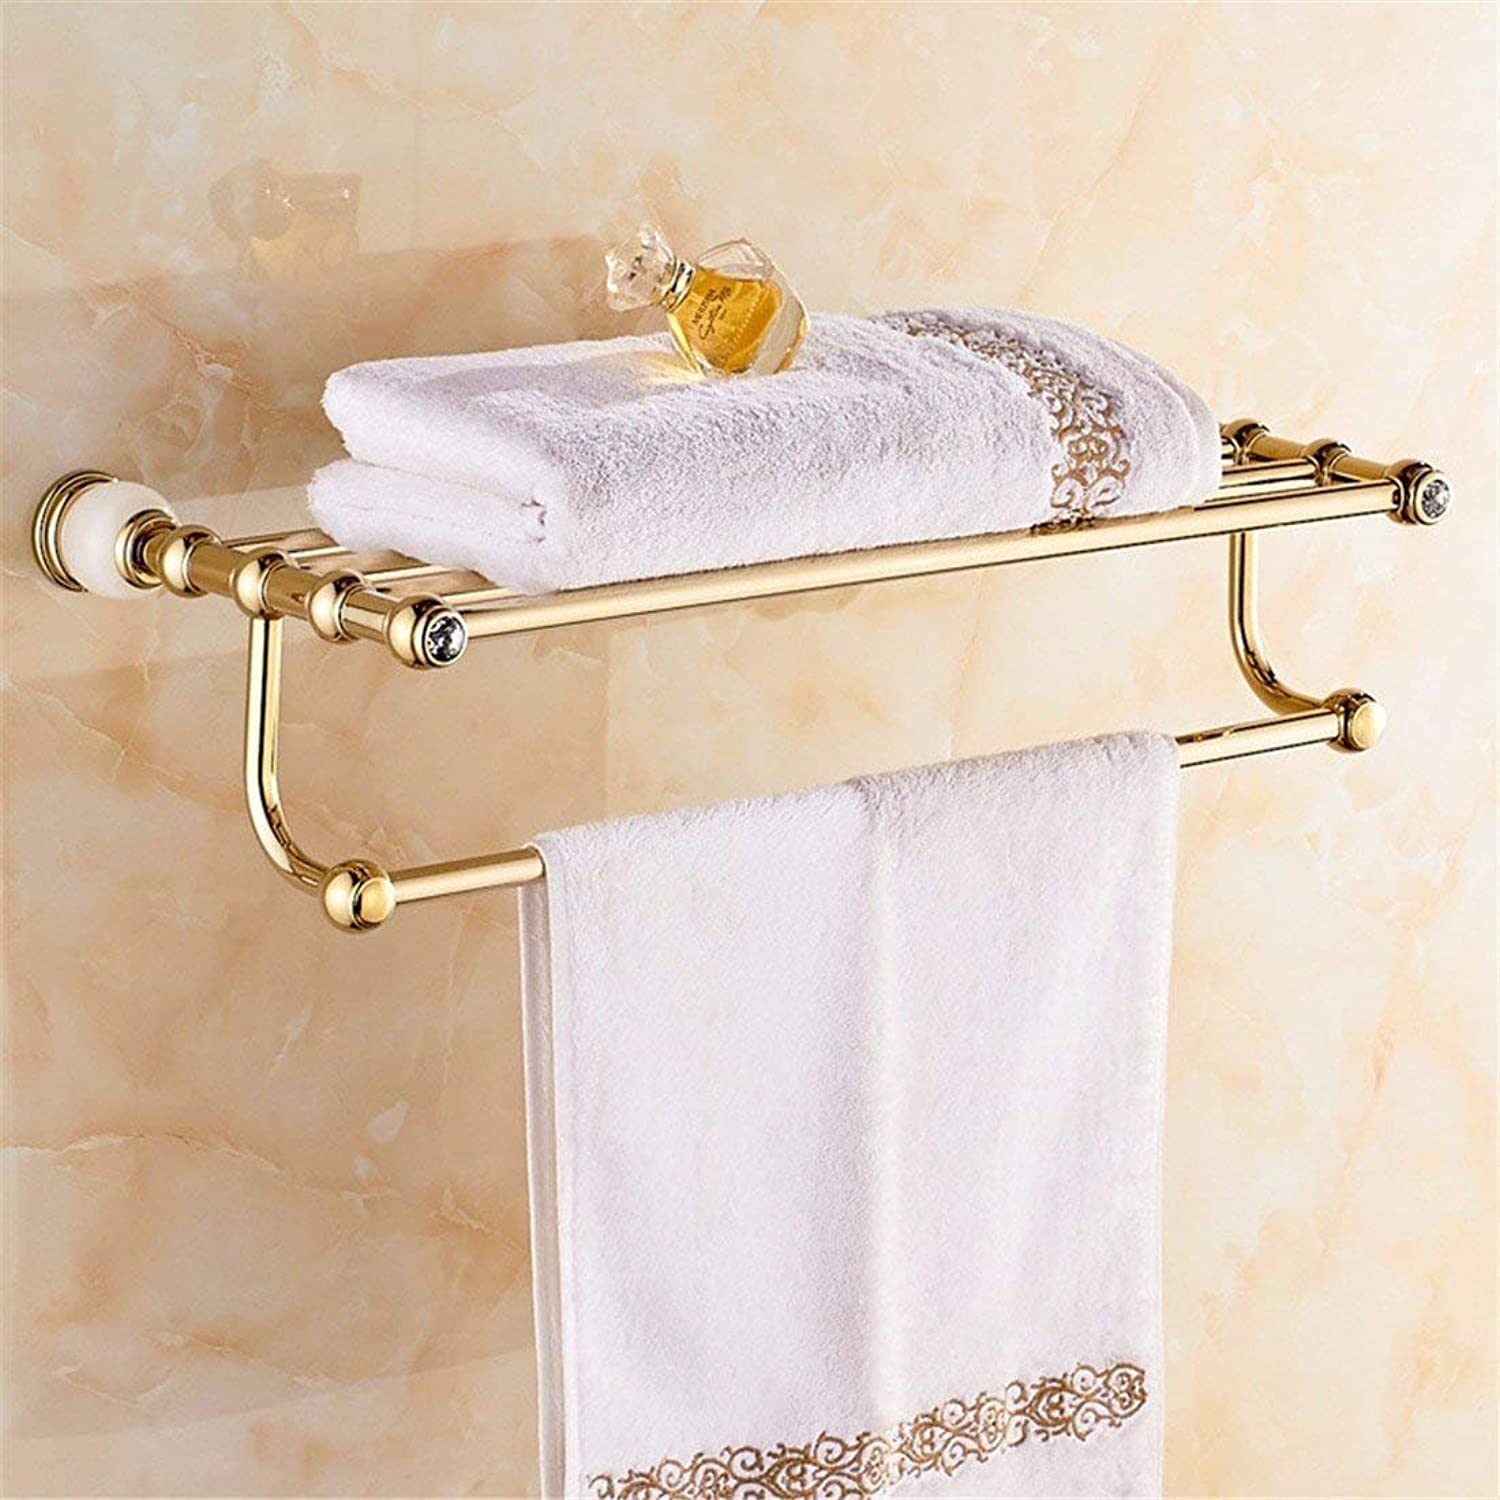 White gold of European Christmas Copper Accessories Jade Diamond of Bathroom Basic Set of WC Brush Paper Holder Dry-Towels,